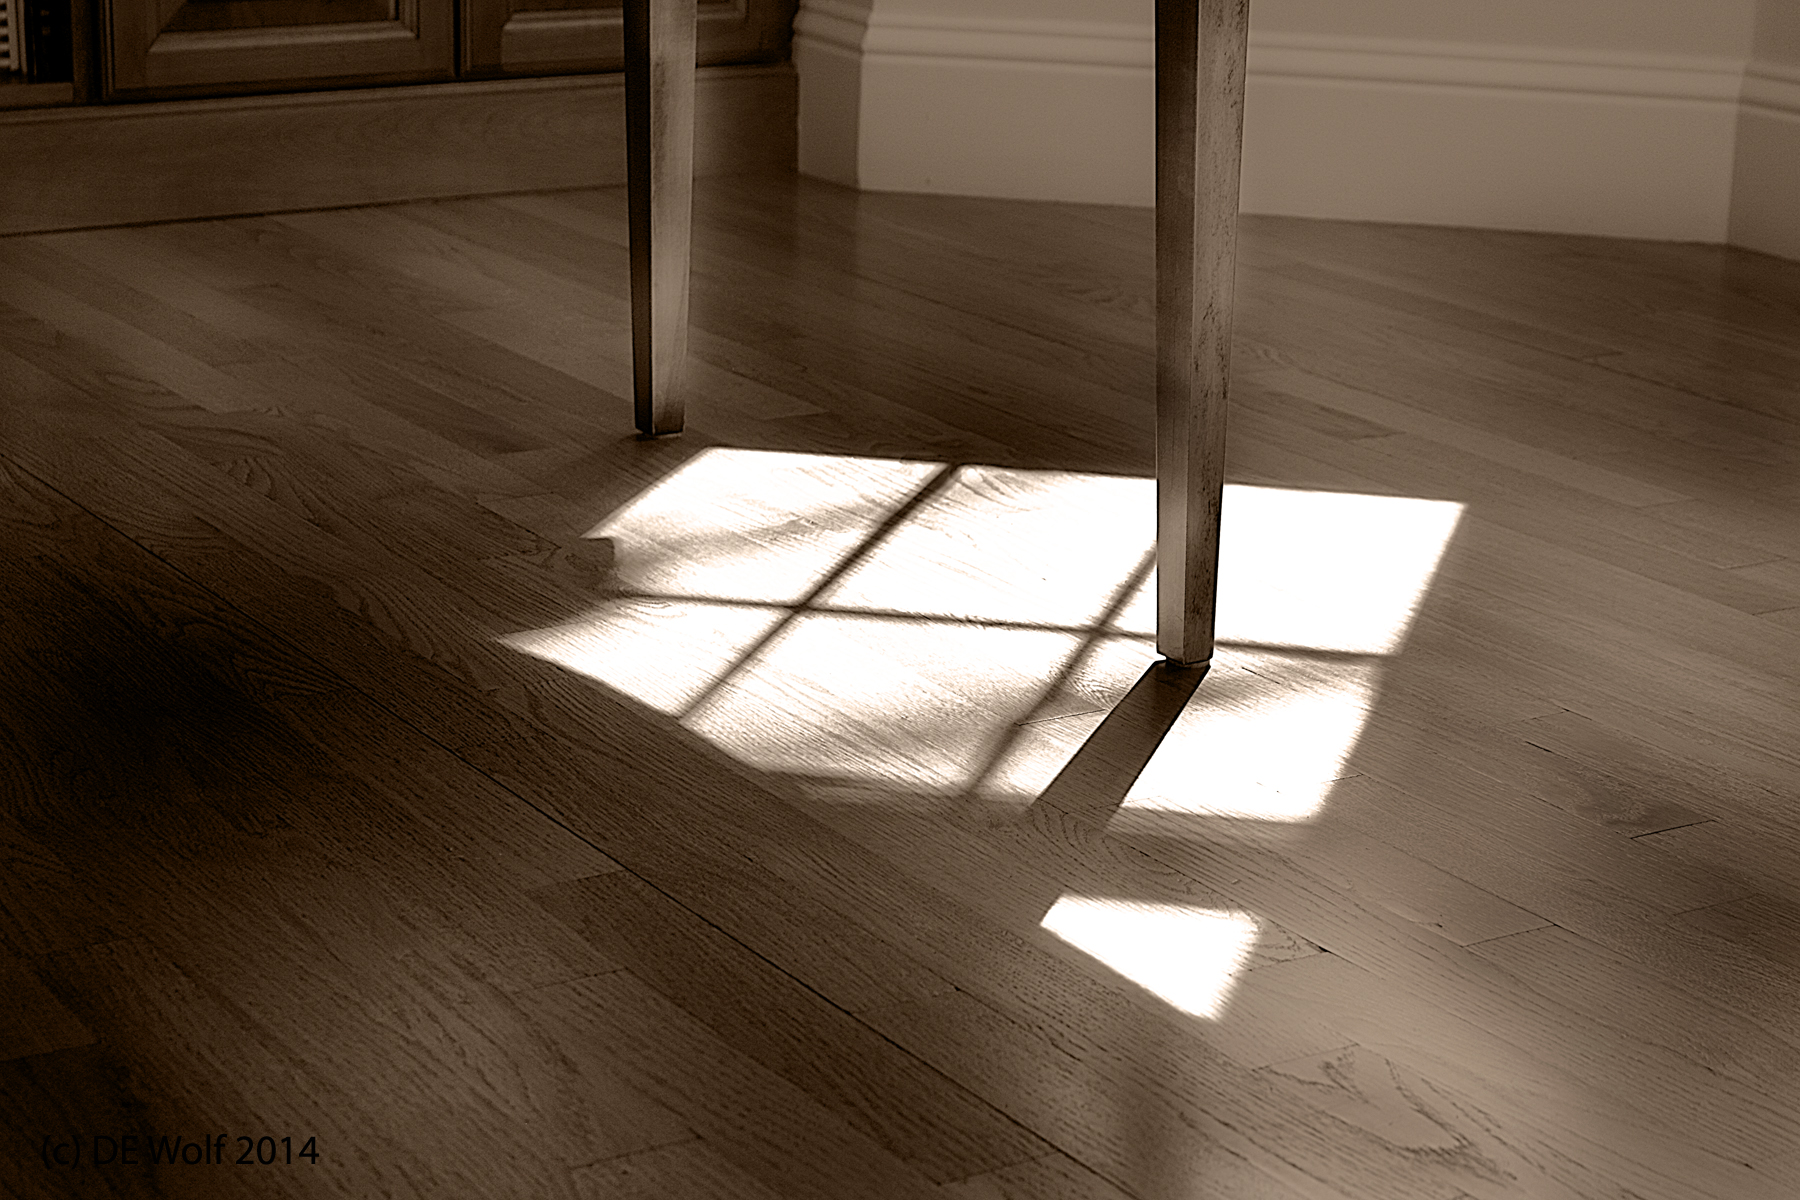 Long Shadows with Simple Gifts, (c) DE Wolf 2014.